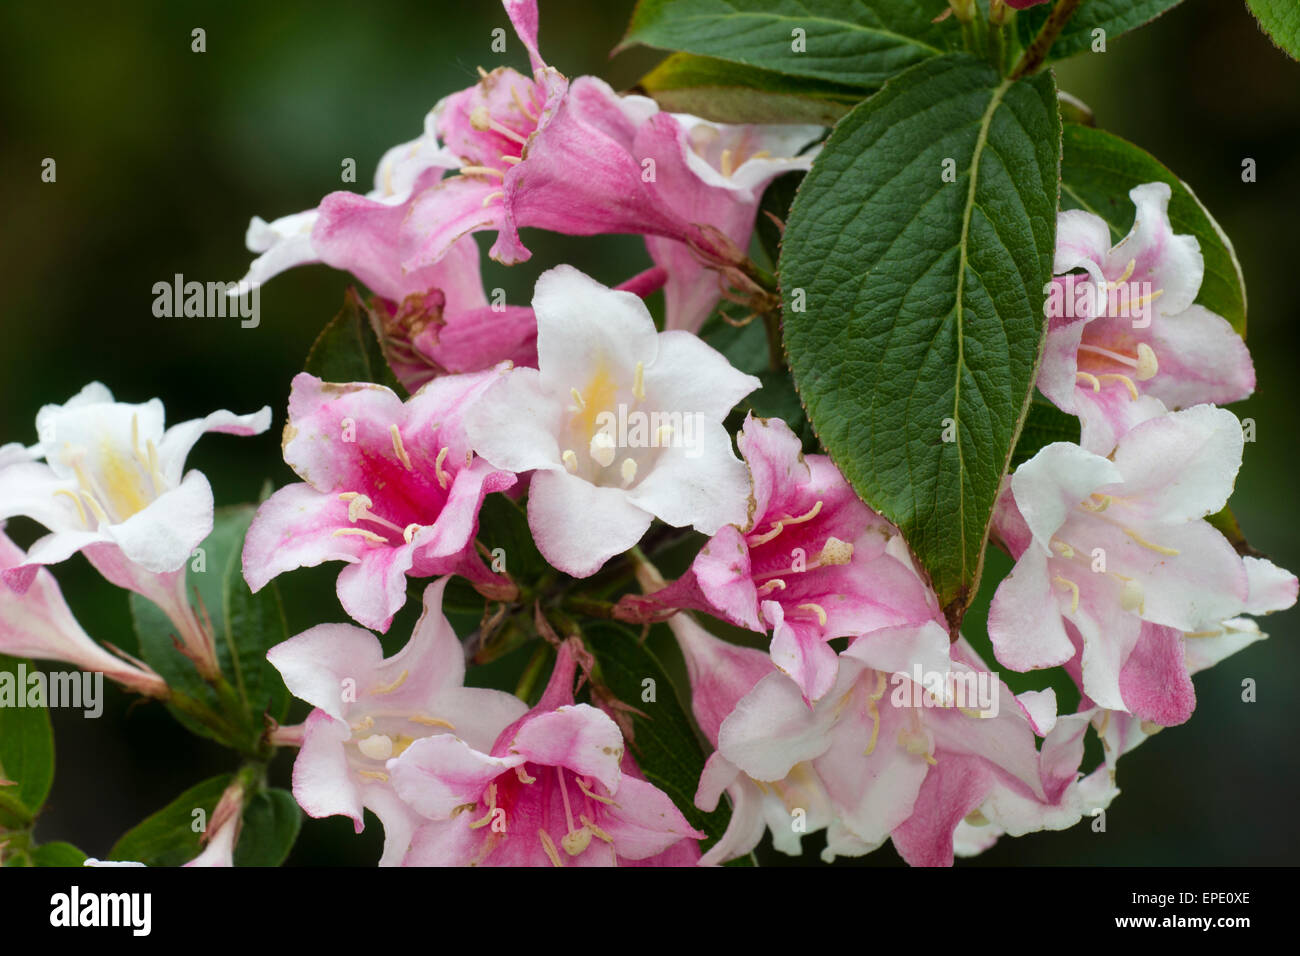 Plain leaves and white flowers that fade to red in the hardy shrub plain leaves and white flowers that fade to red in the hardy shrub weigela florida mightylinksfo Images